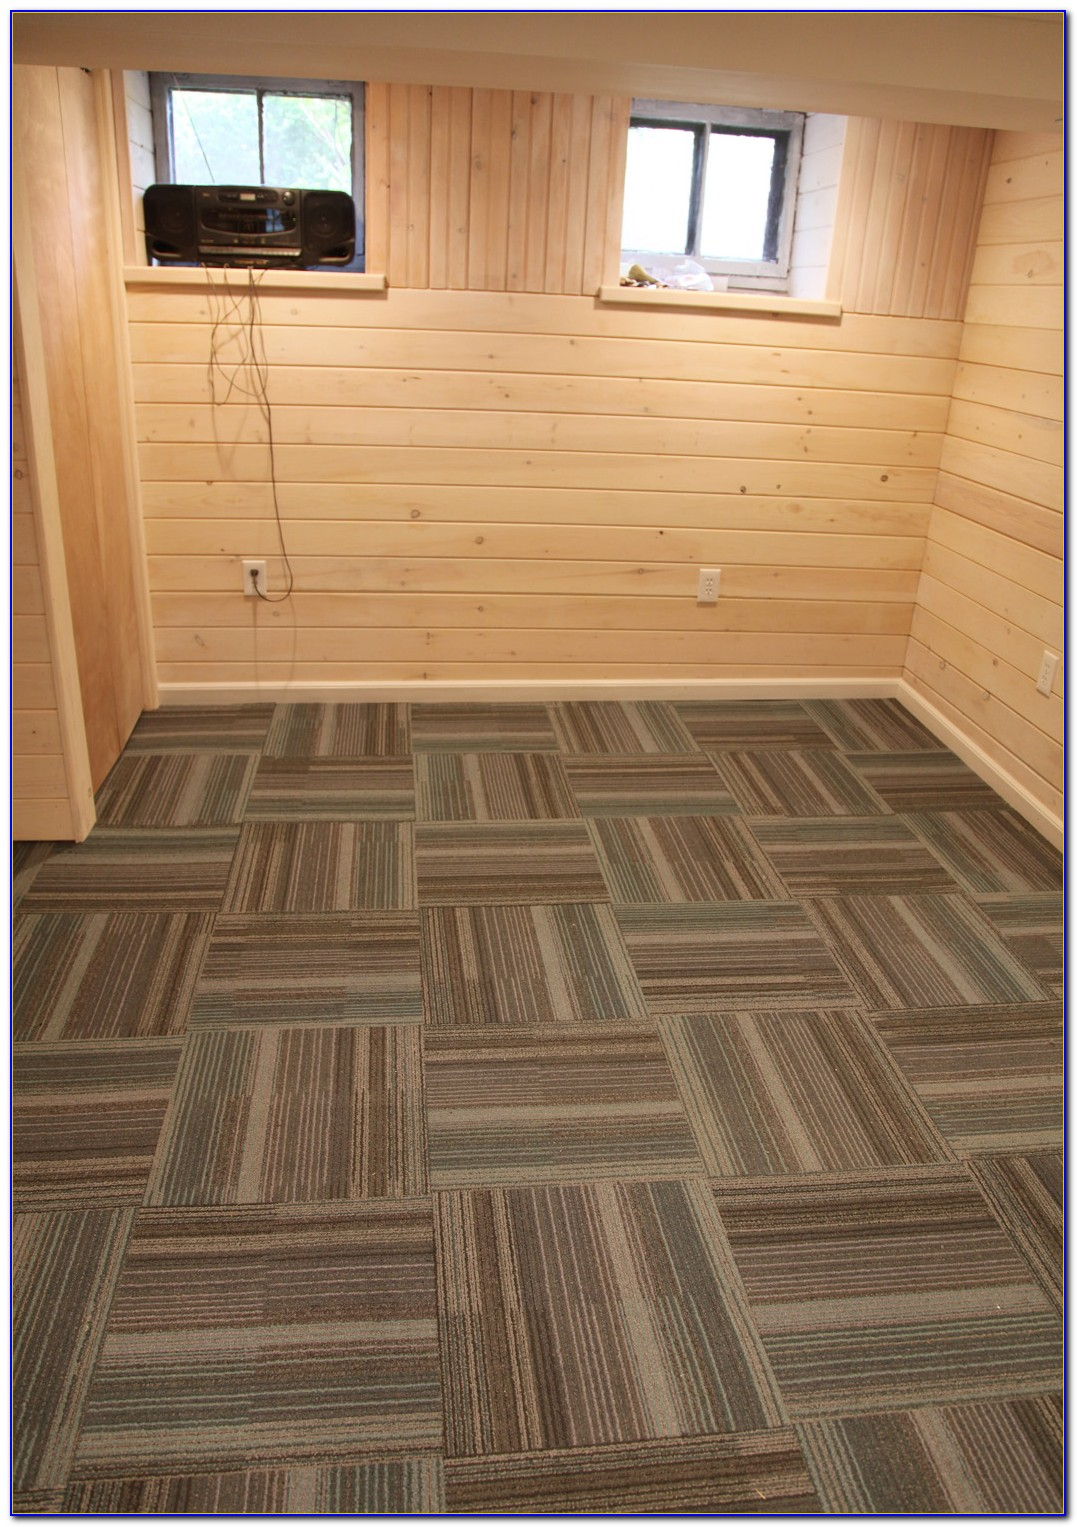 Carpet Tiles For Concrete Basement Floor